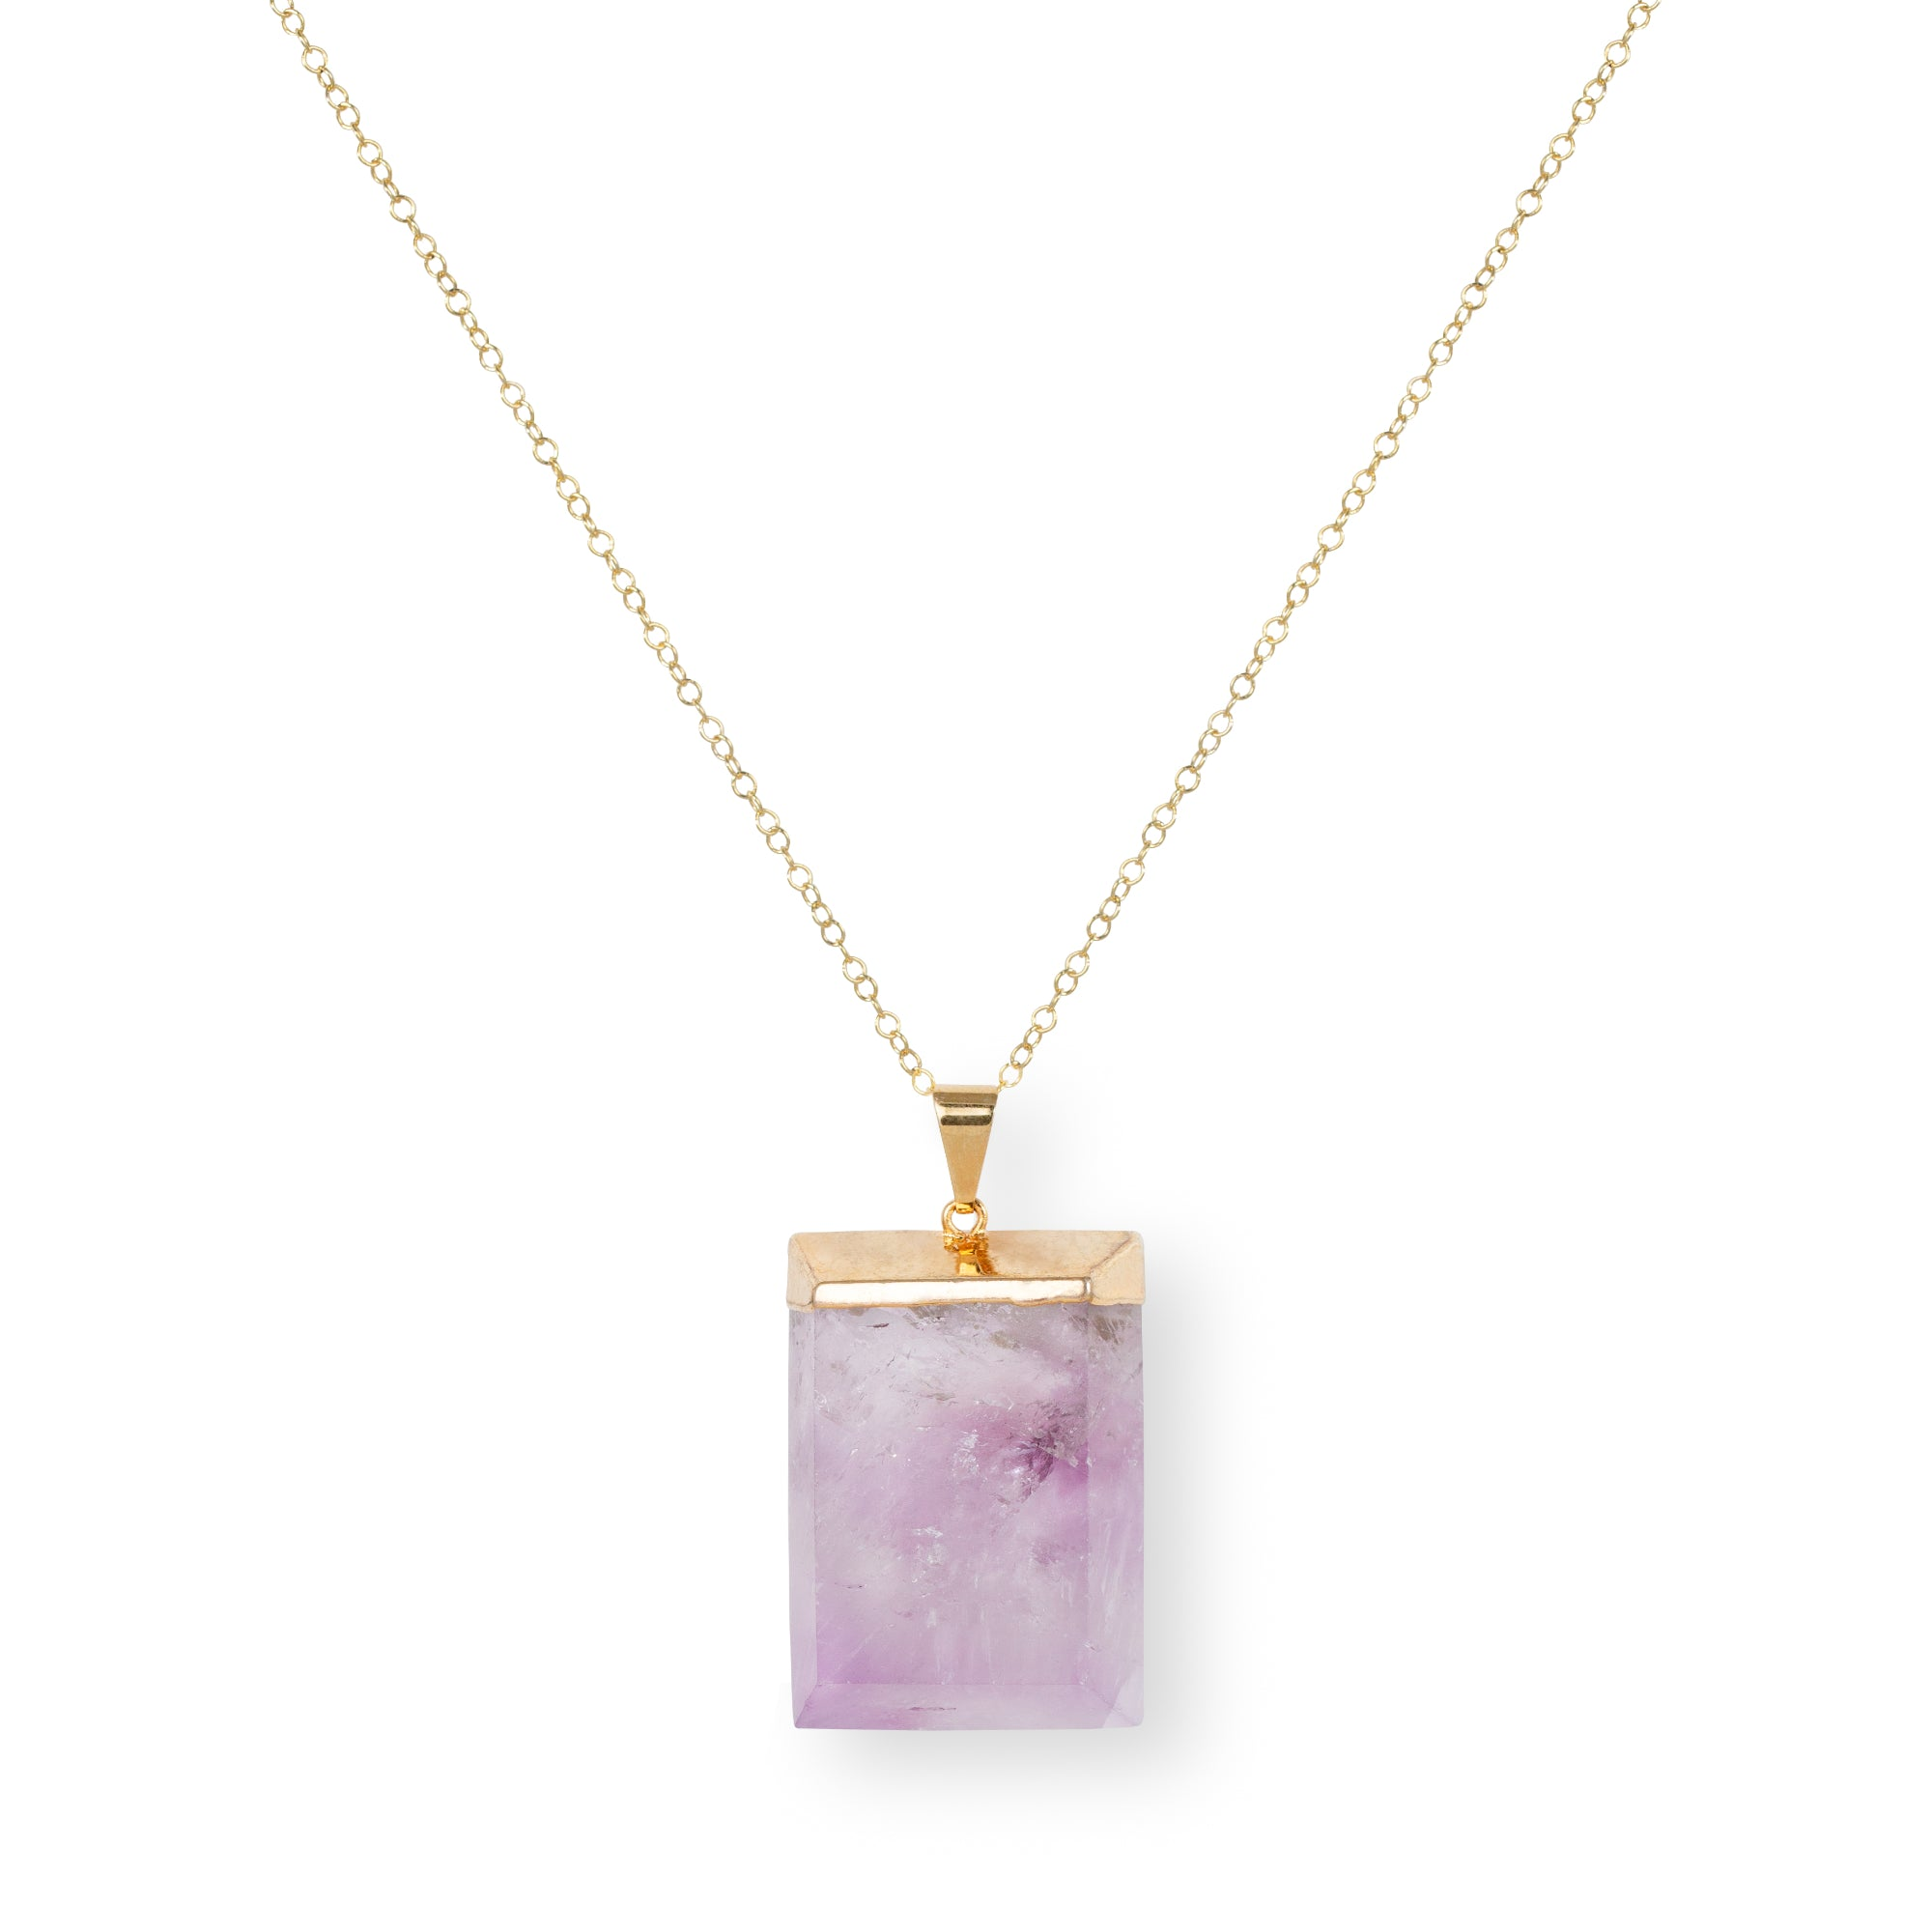 Close-up of Rectangular Purple Amethyst and Gold Long Necklace 'I Am Protected' on White Background Product Photo by Asha Blooms